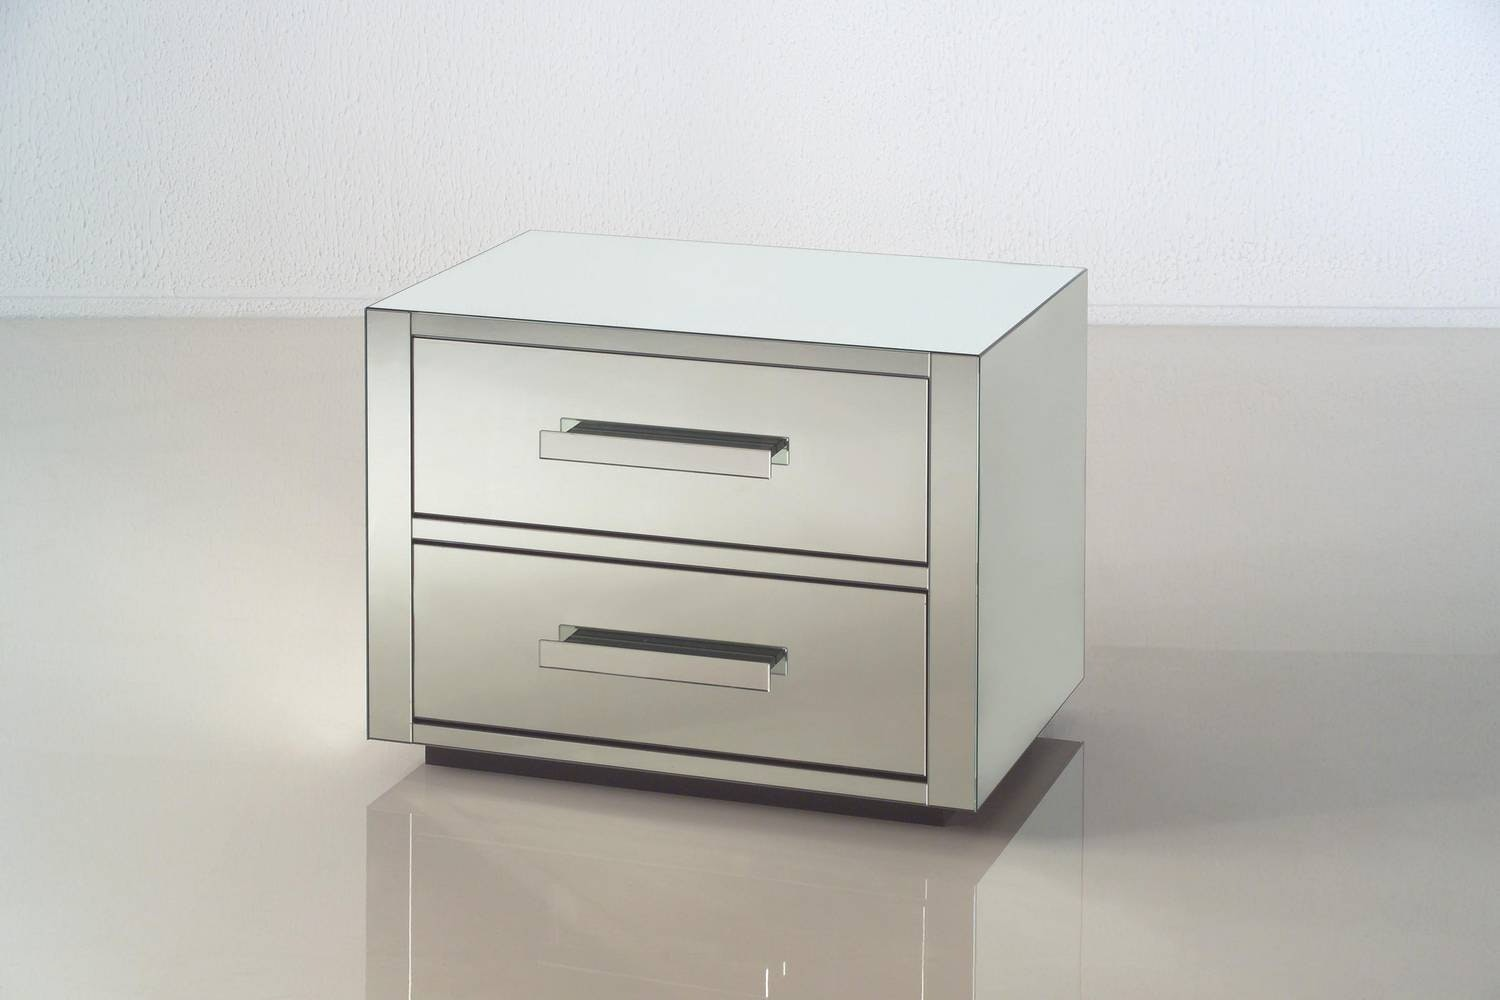 Queen Bedside Table by Opera Design for Porada